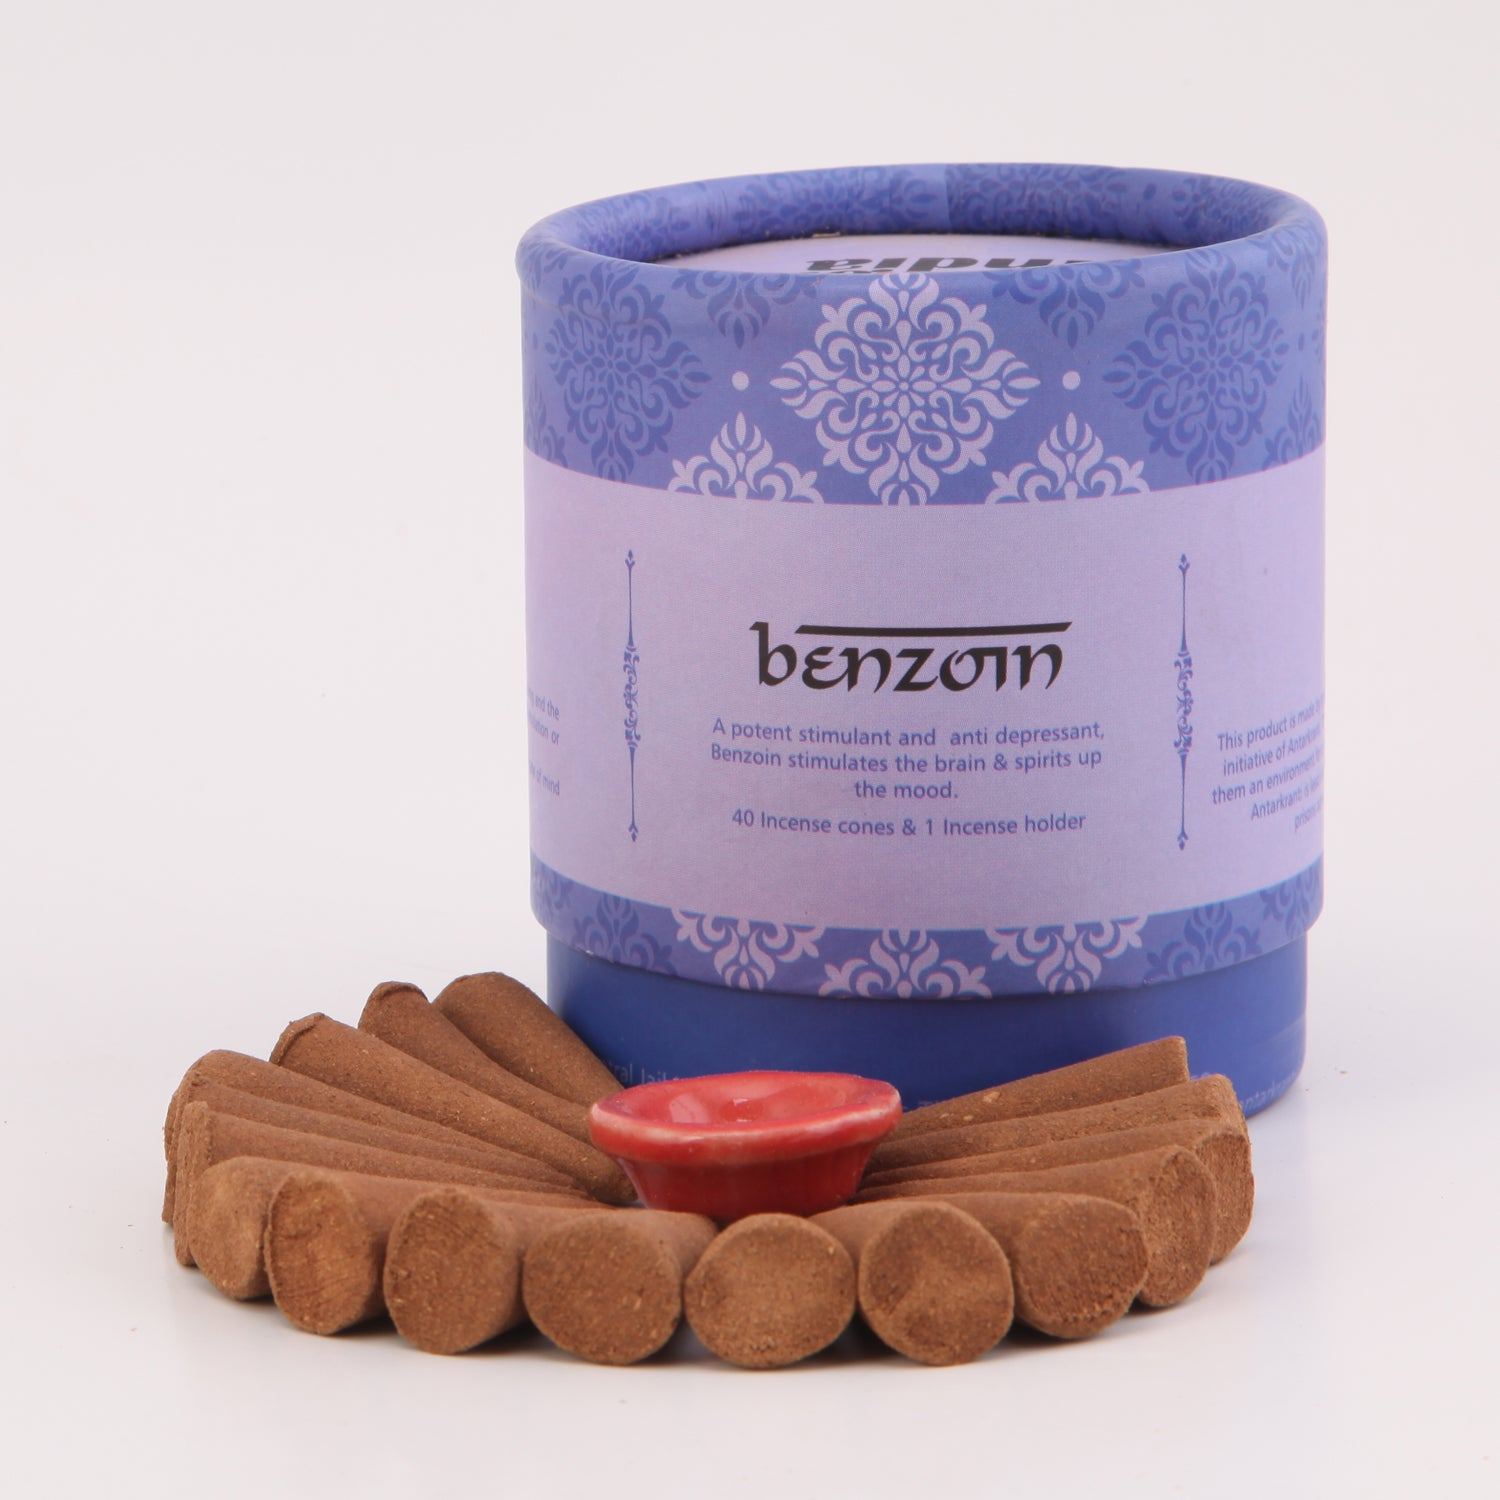 Benzoin Natural Incense Dhoop cones with a Cone holder | Charcoal free